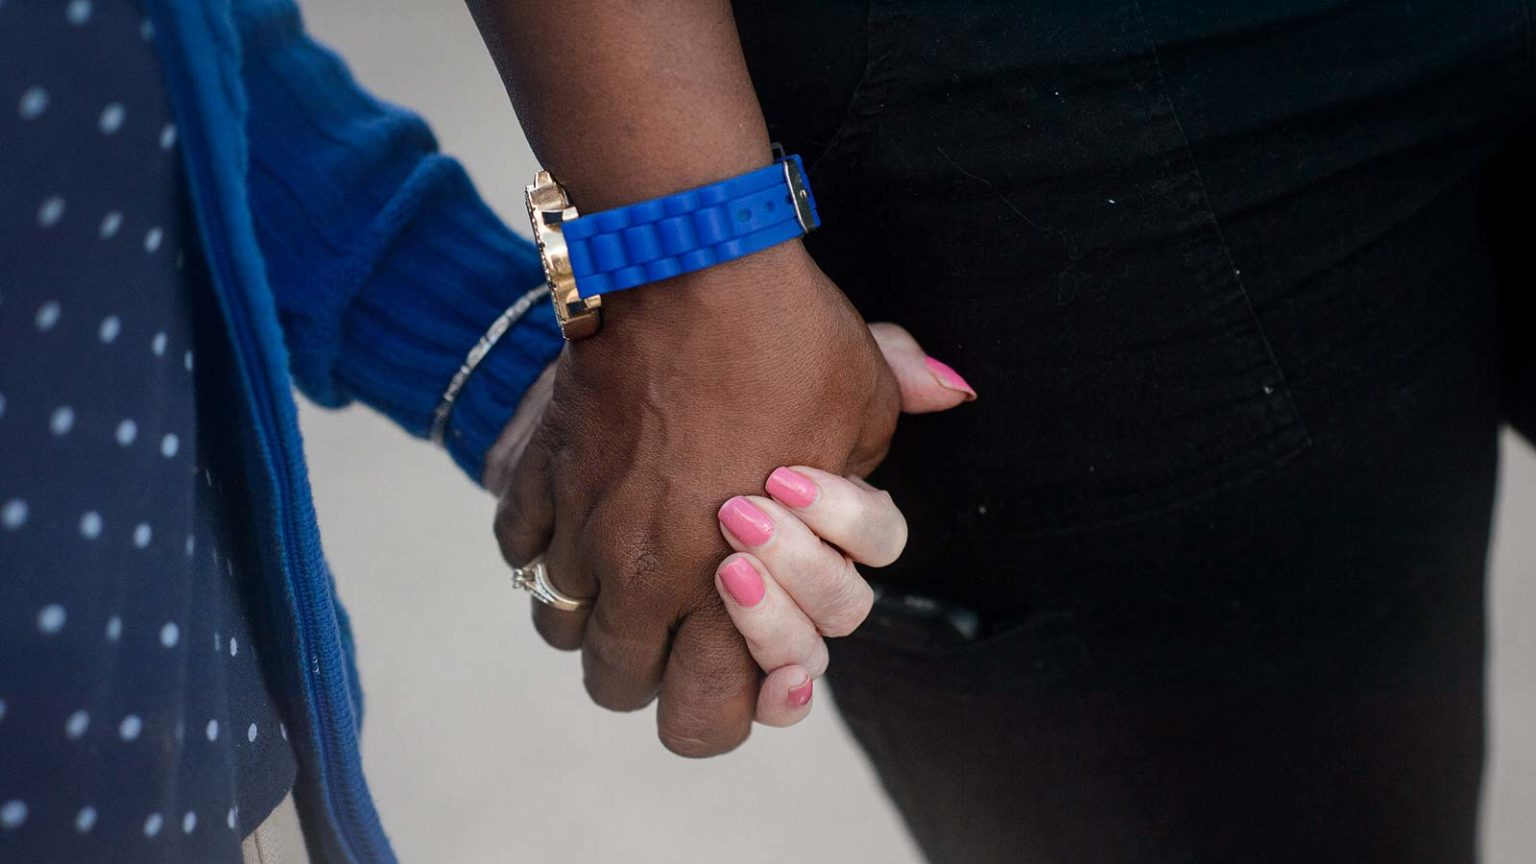 Staff member and senior woman holding hands walking